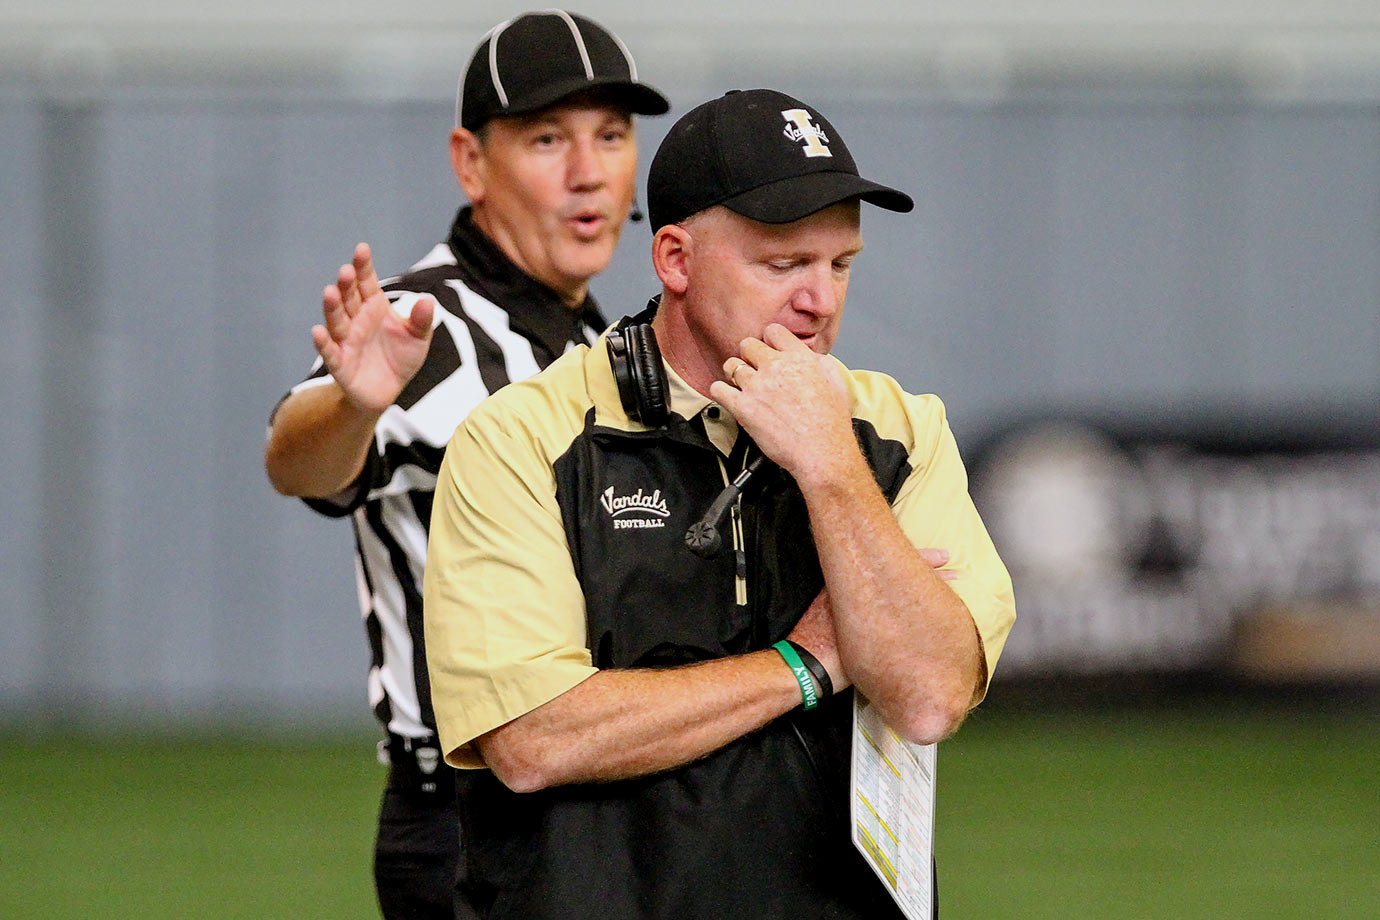 Idaho football coach Paul Petrino, the brother of motorcycle enthusiast Bobby Petrino, is having a pretty good season on the field. He got the Vandals to 3–8 through mid-November, after winning just one game in each of the last two seasons. But he lands a spot on this list after angrily confronting a reporter who criticized him.